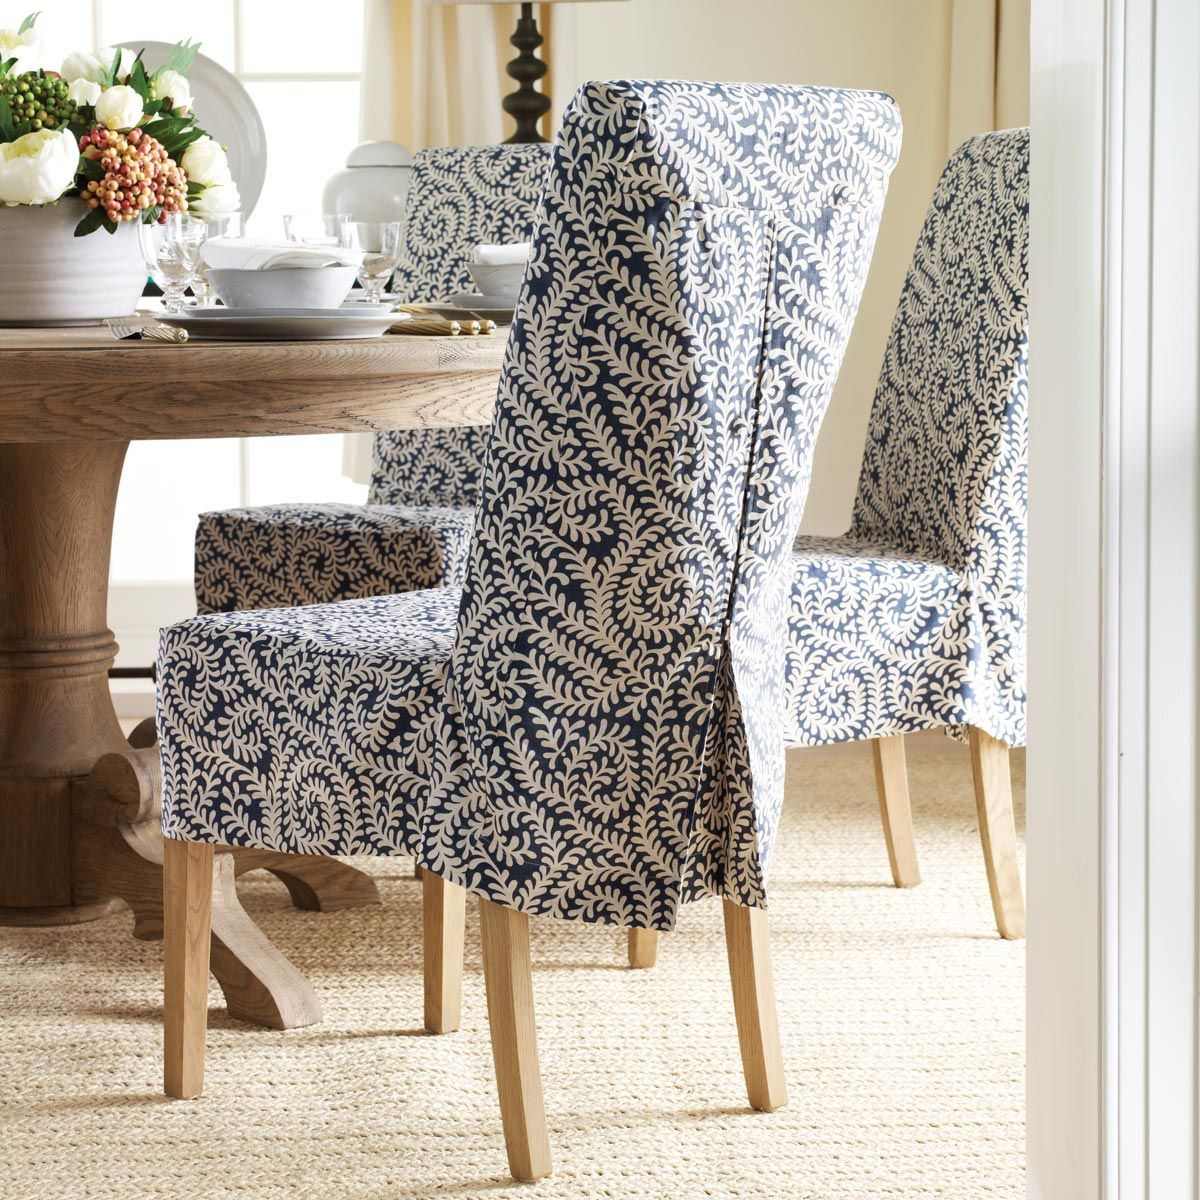 Linen Dining Chair Covers Lifeform Office Review Samsara Slip Cover For Echo Low Back